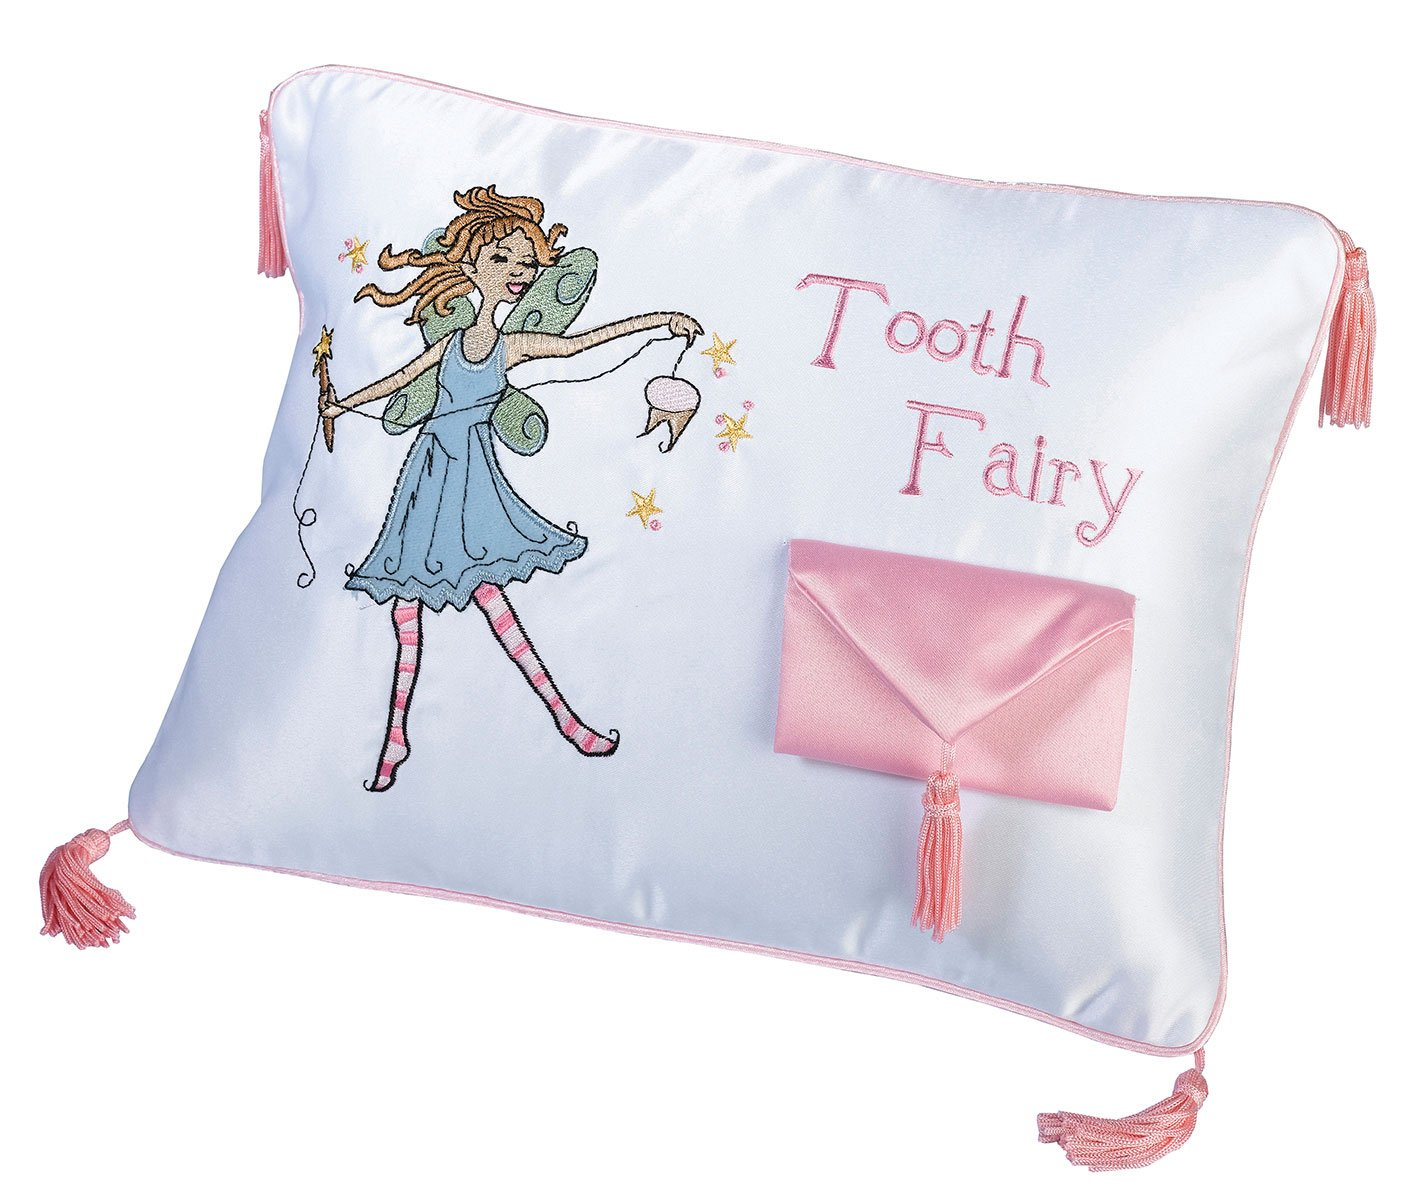 Tooth Fairy Pillow Lovely And Unique Item Baby With Embroider Sweet Dream